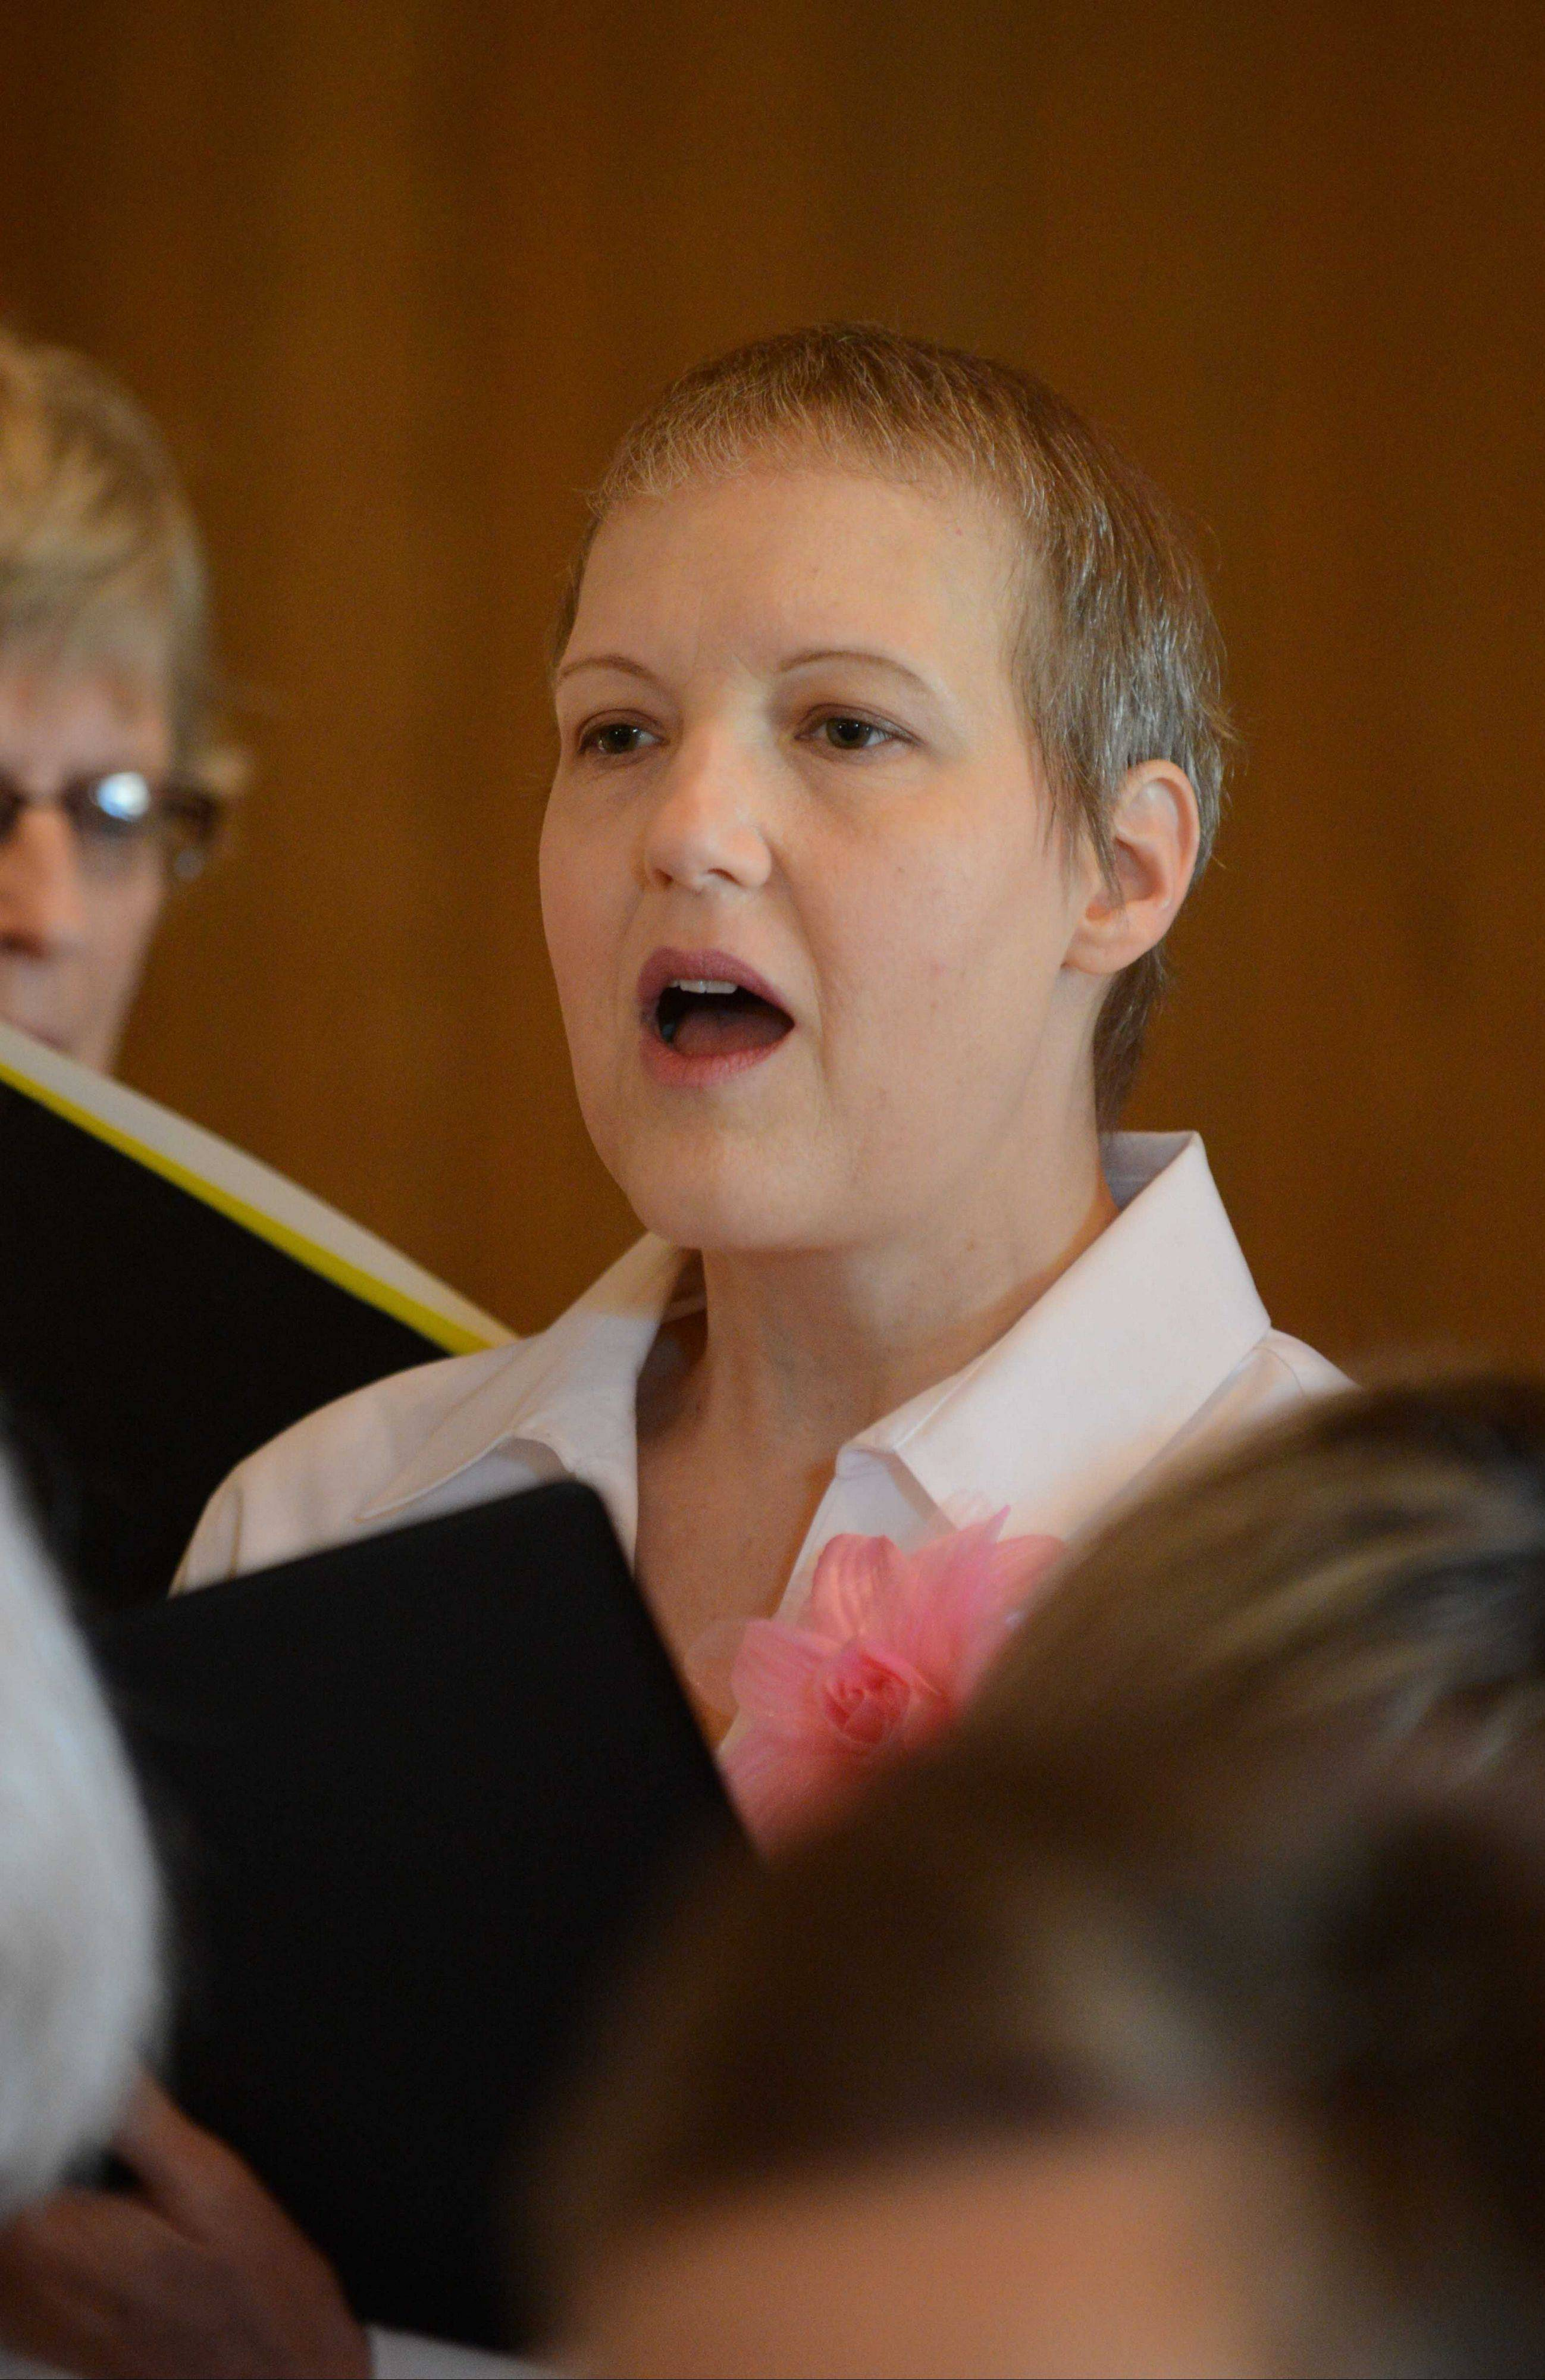 Jennifer Jones, diagnosed last year with breast cancer, has felt too self-conscious to sing with her church choir but finds comfort -- and her voice -- in singing with the Voices of Hope chorus.